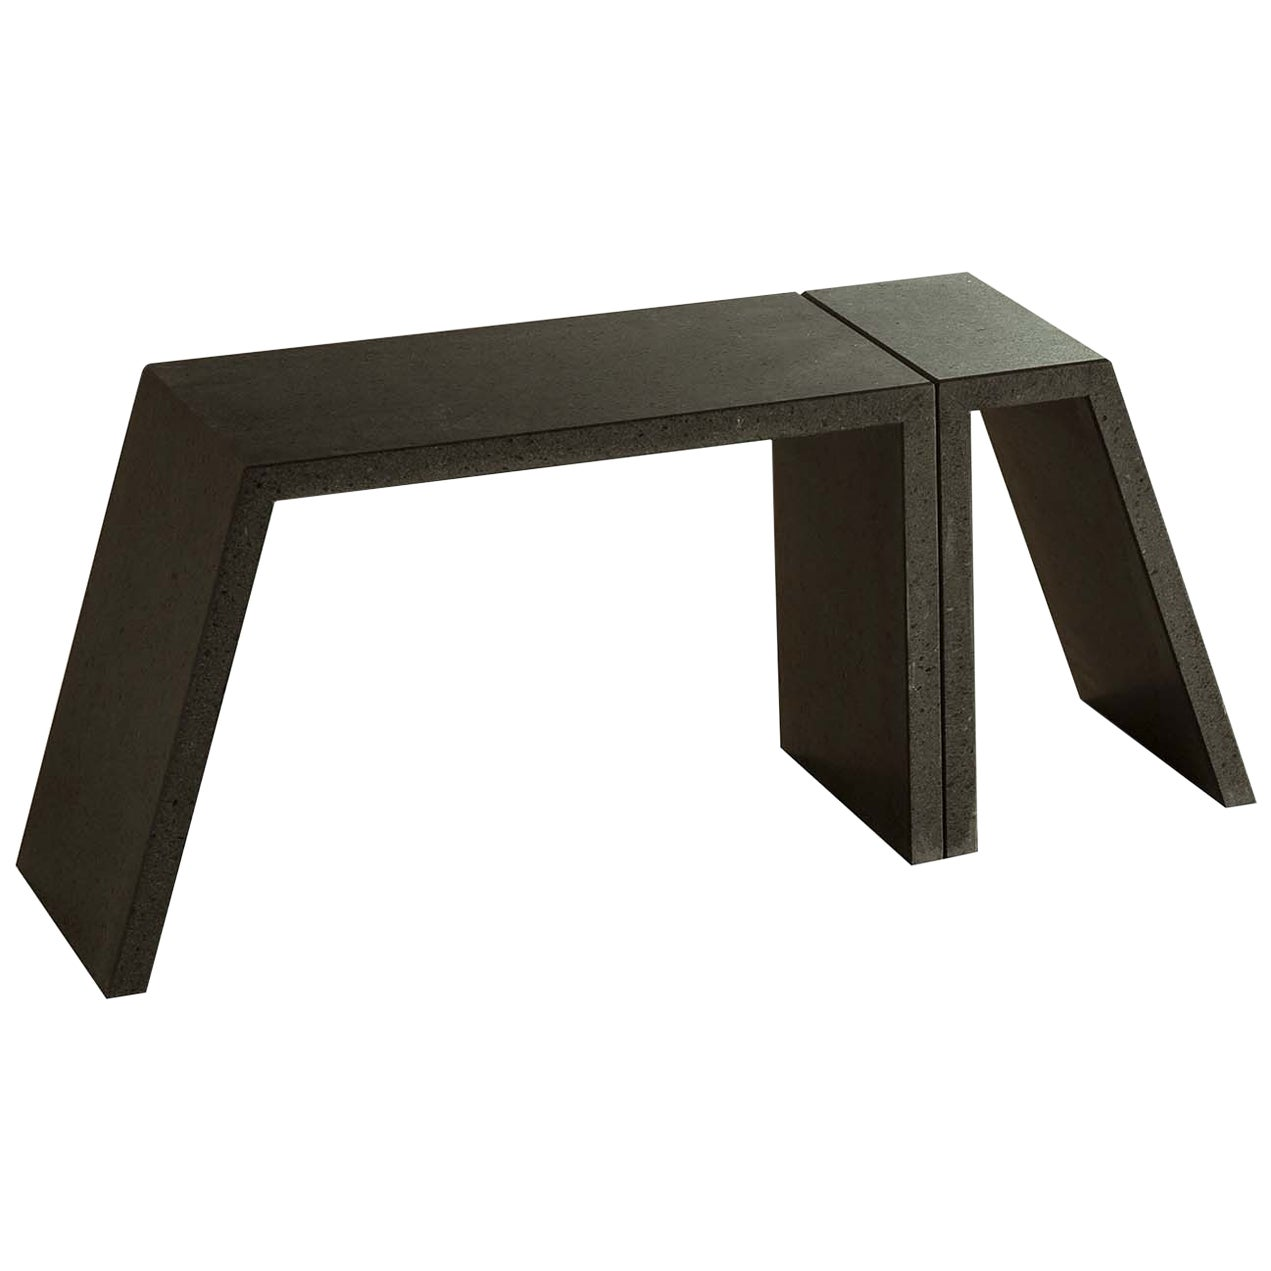 Carlino Coffee Table by Claudia Carlino